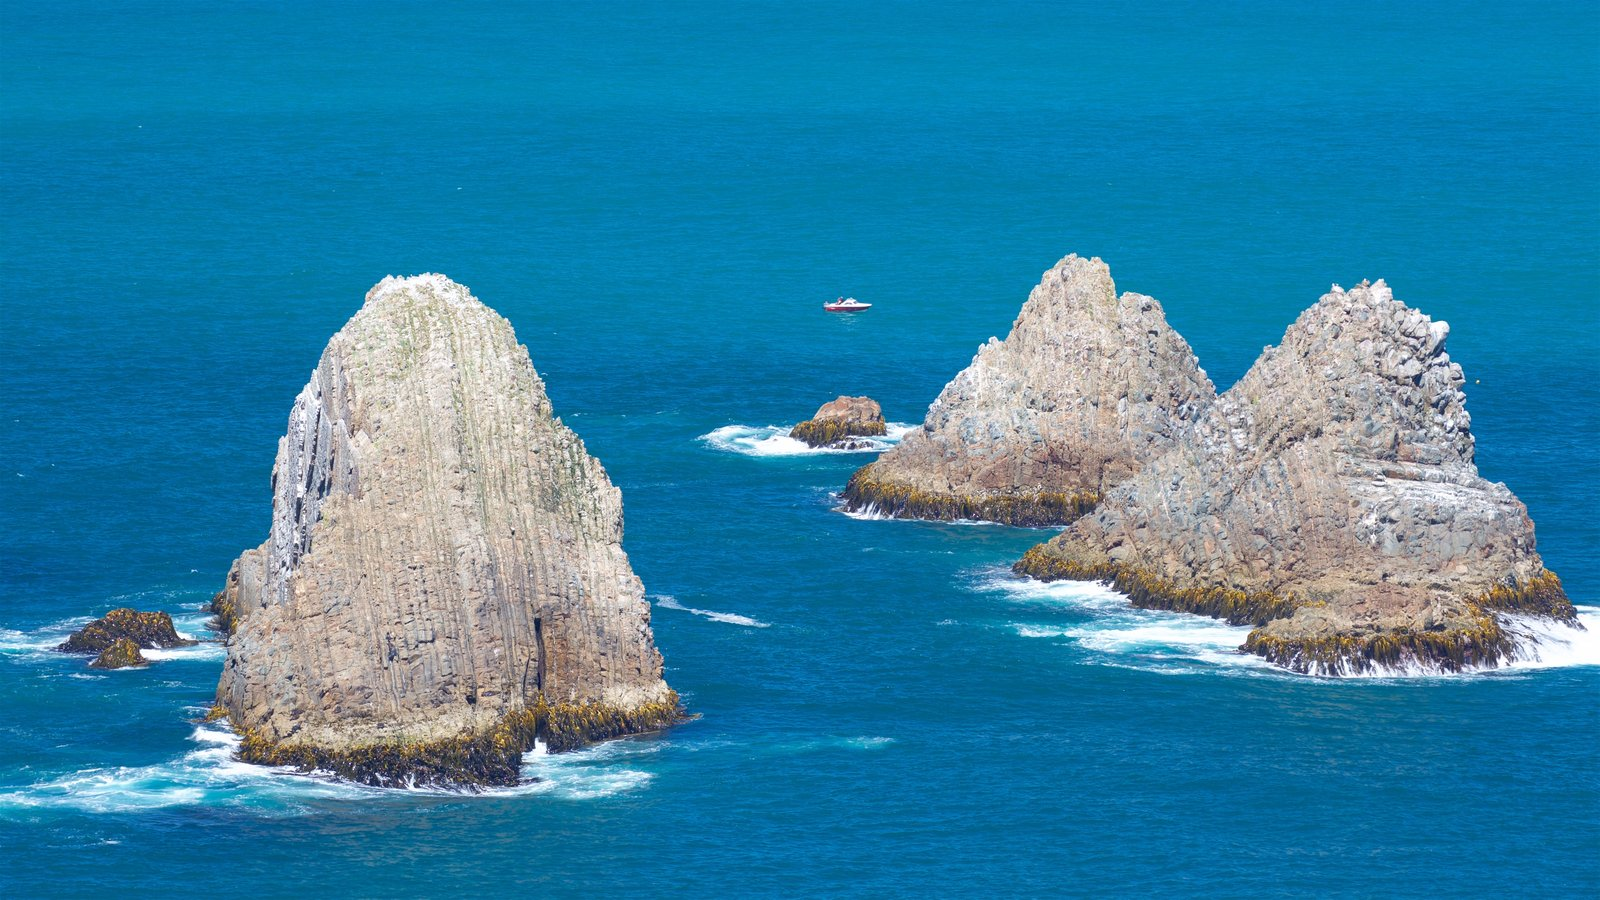 Nugget Point Lighthouse showing rugged coastline and boating